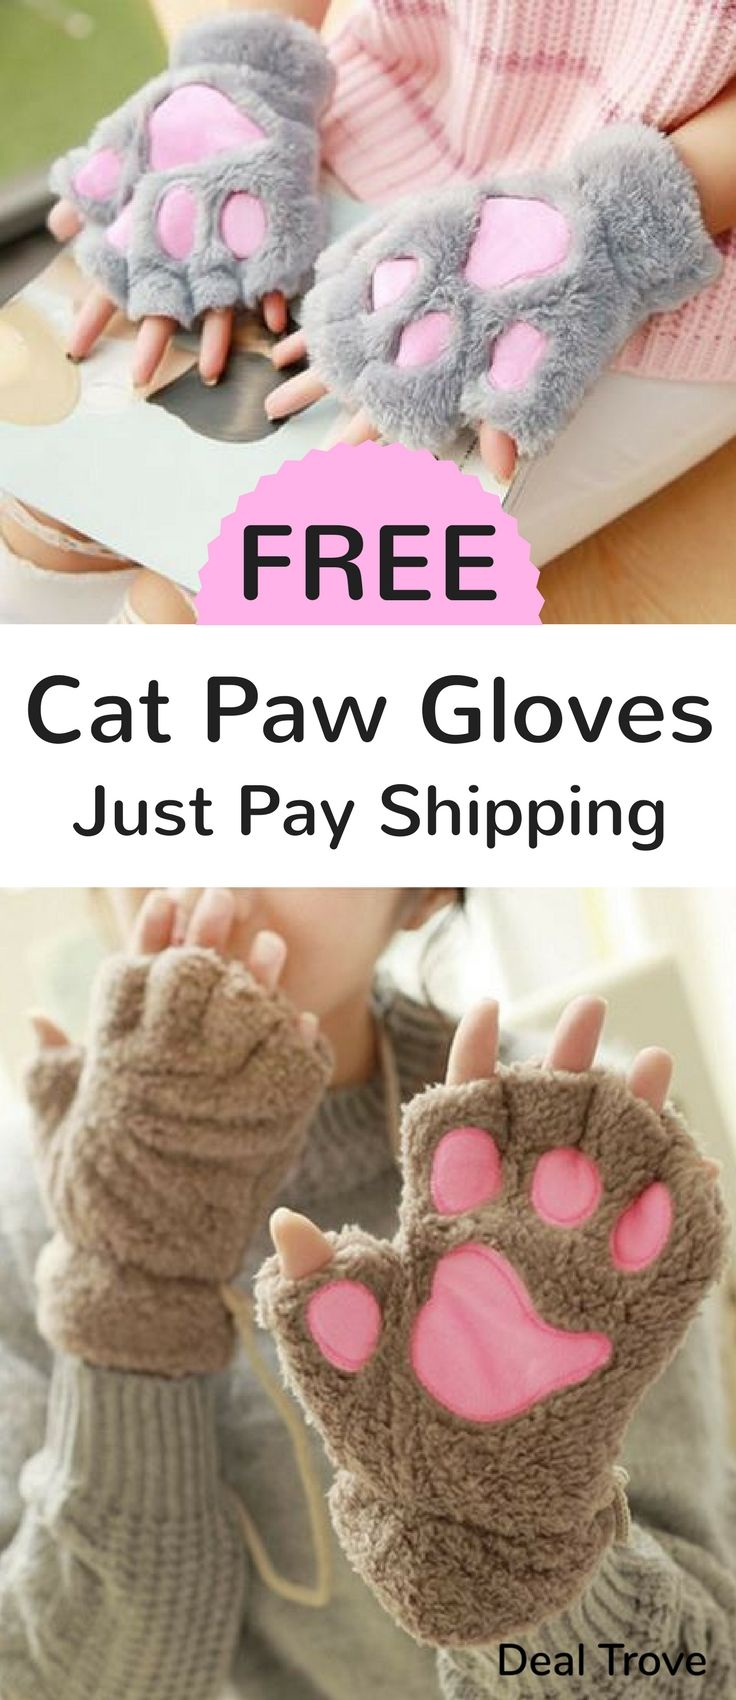 Get These Free Cat Paw Gloves And Keep Your Hands Warm In An Adorable Way All You Have To Do Is Pay Shipping Comes In 6 Differe Paw Gloves Free Cats